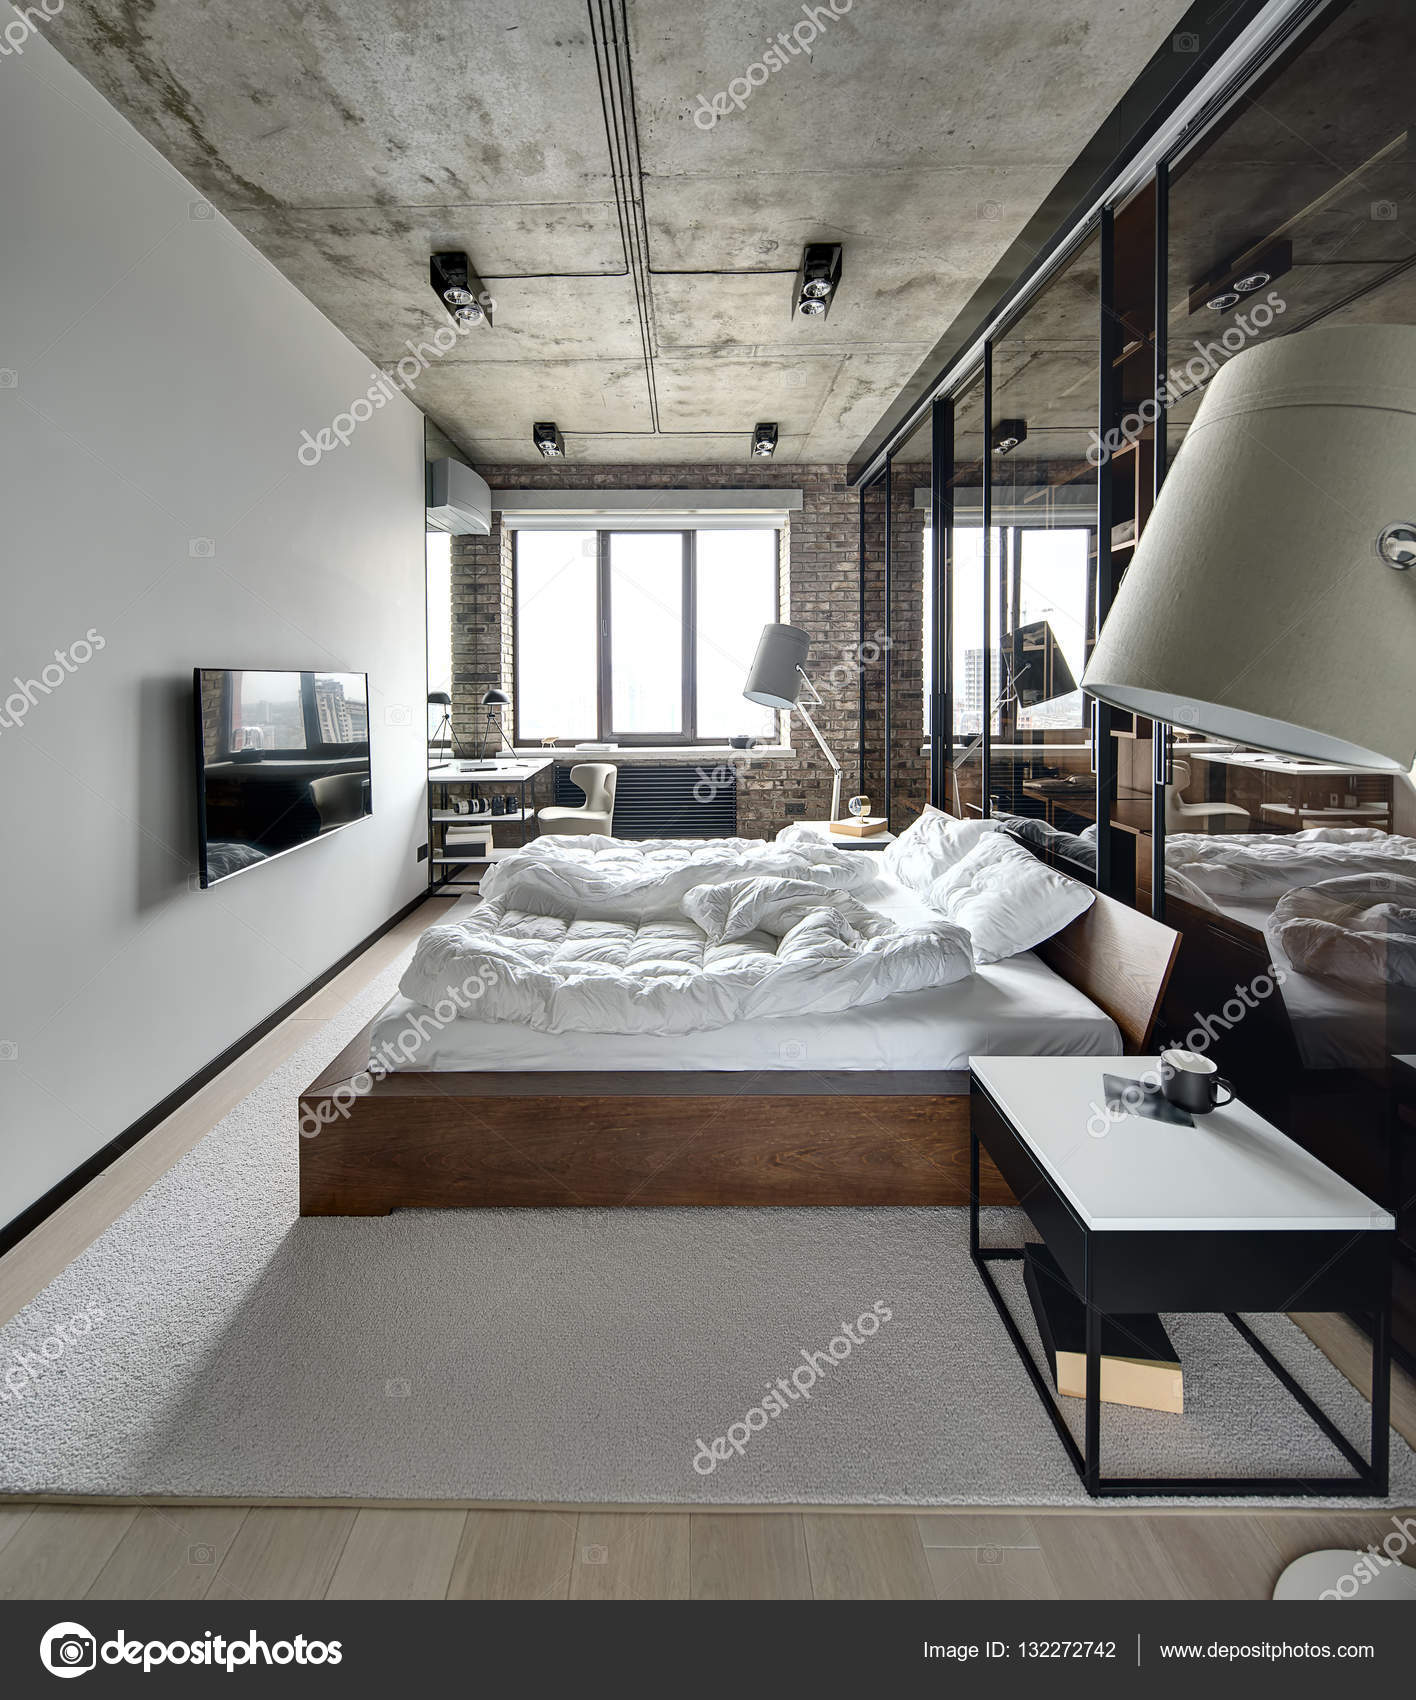 loft style bedroom stock photo bezikus 132272742. Black Bedroom Furniture Sets. Home Design Ideas